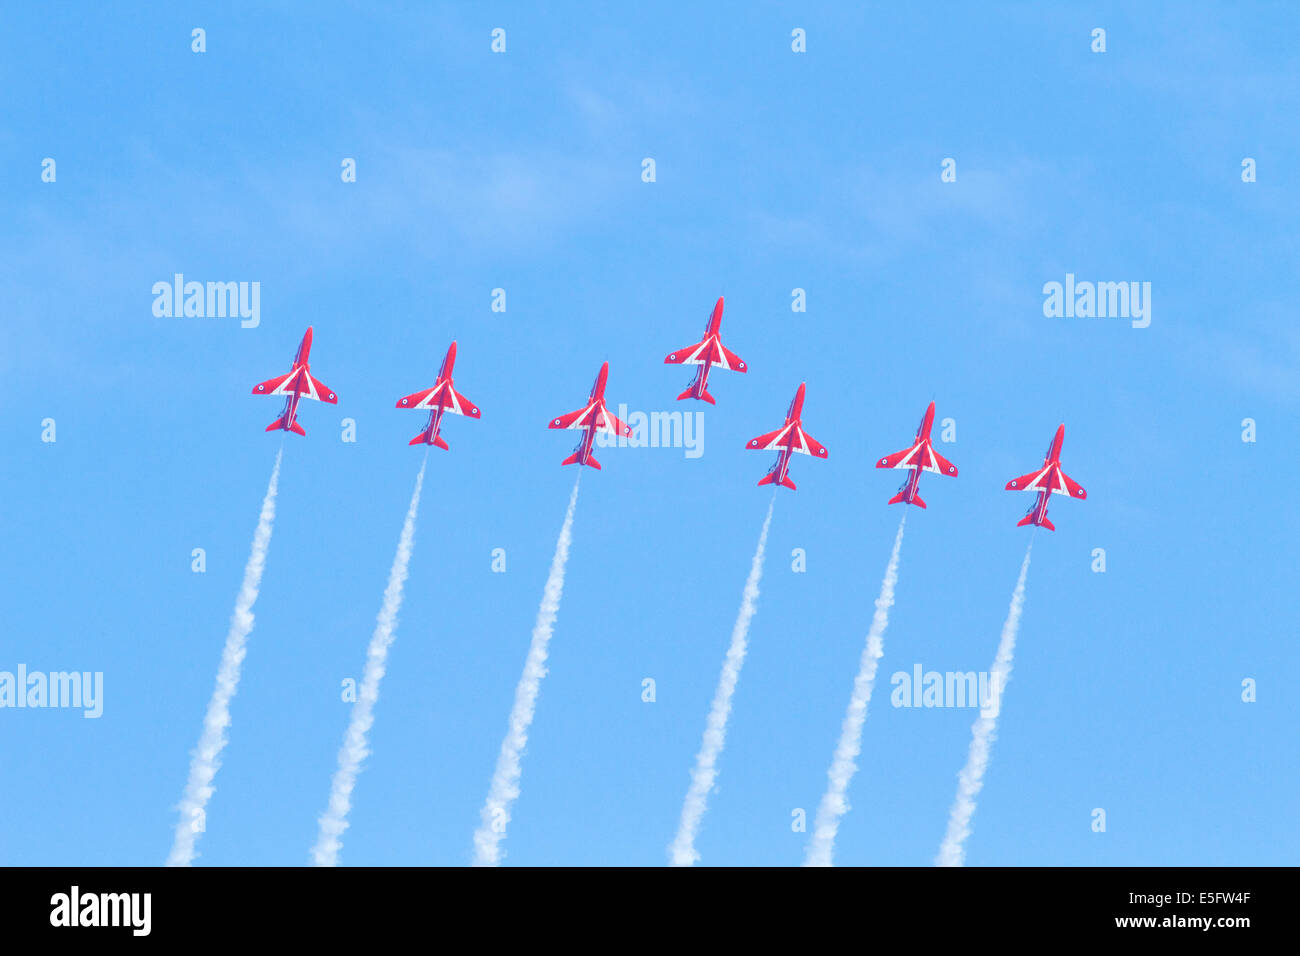 The RAF Red Arrows aerobatic display team flying at Sunderland, 2014 - Stock Image